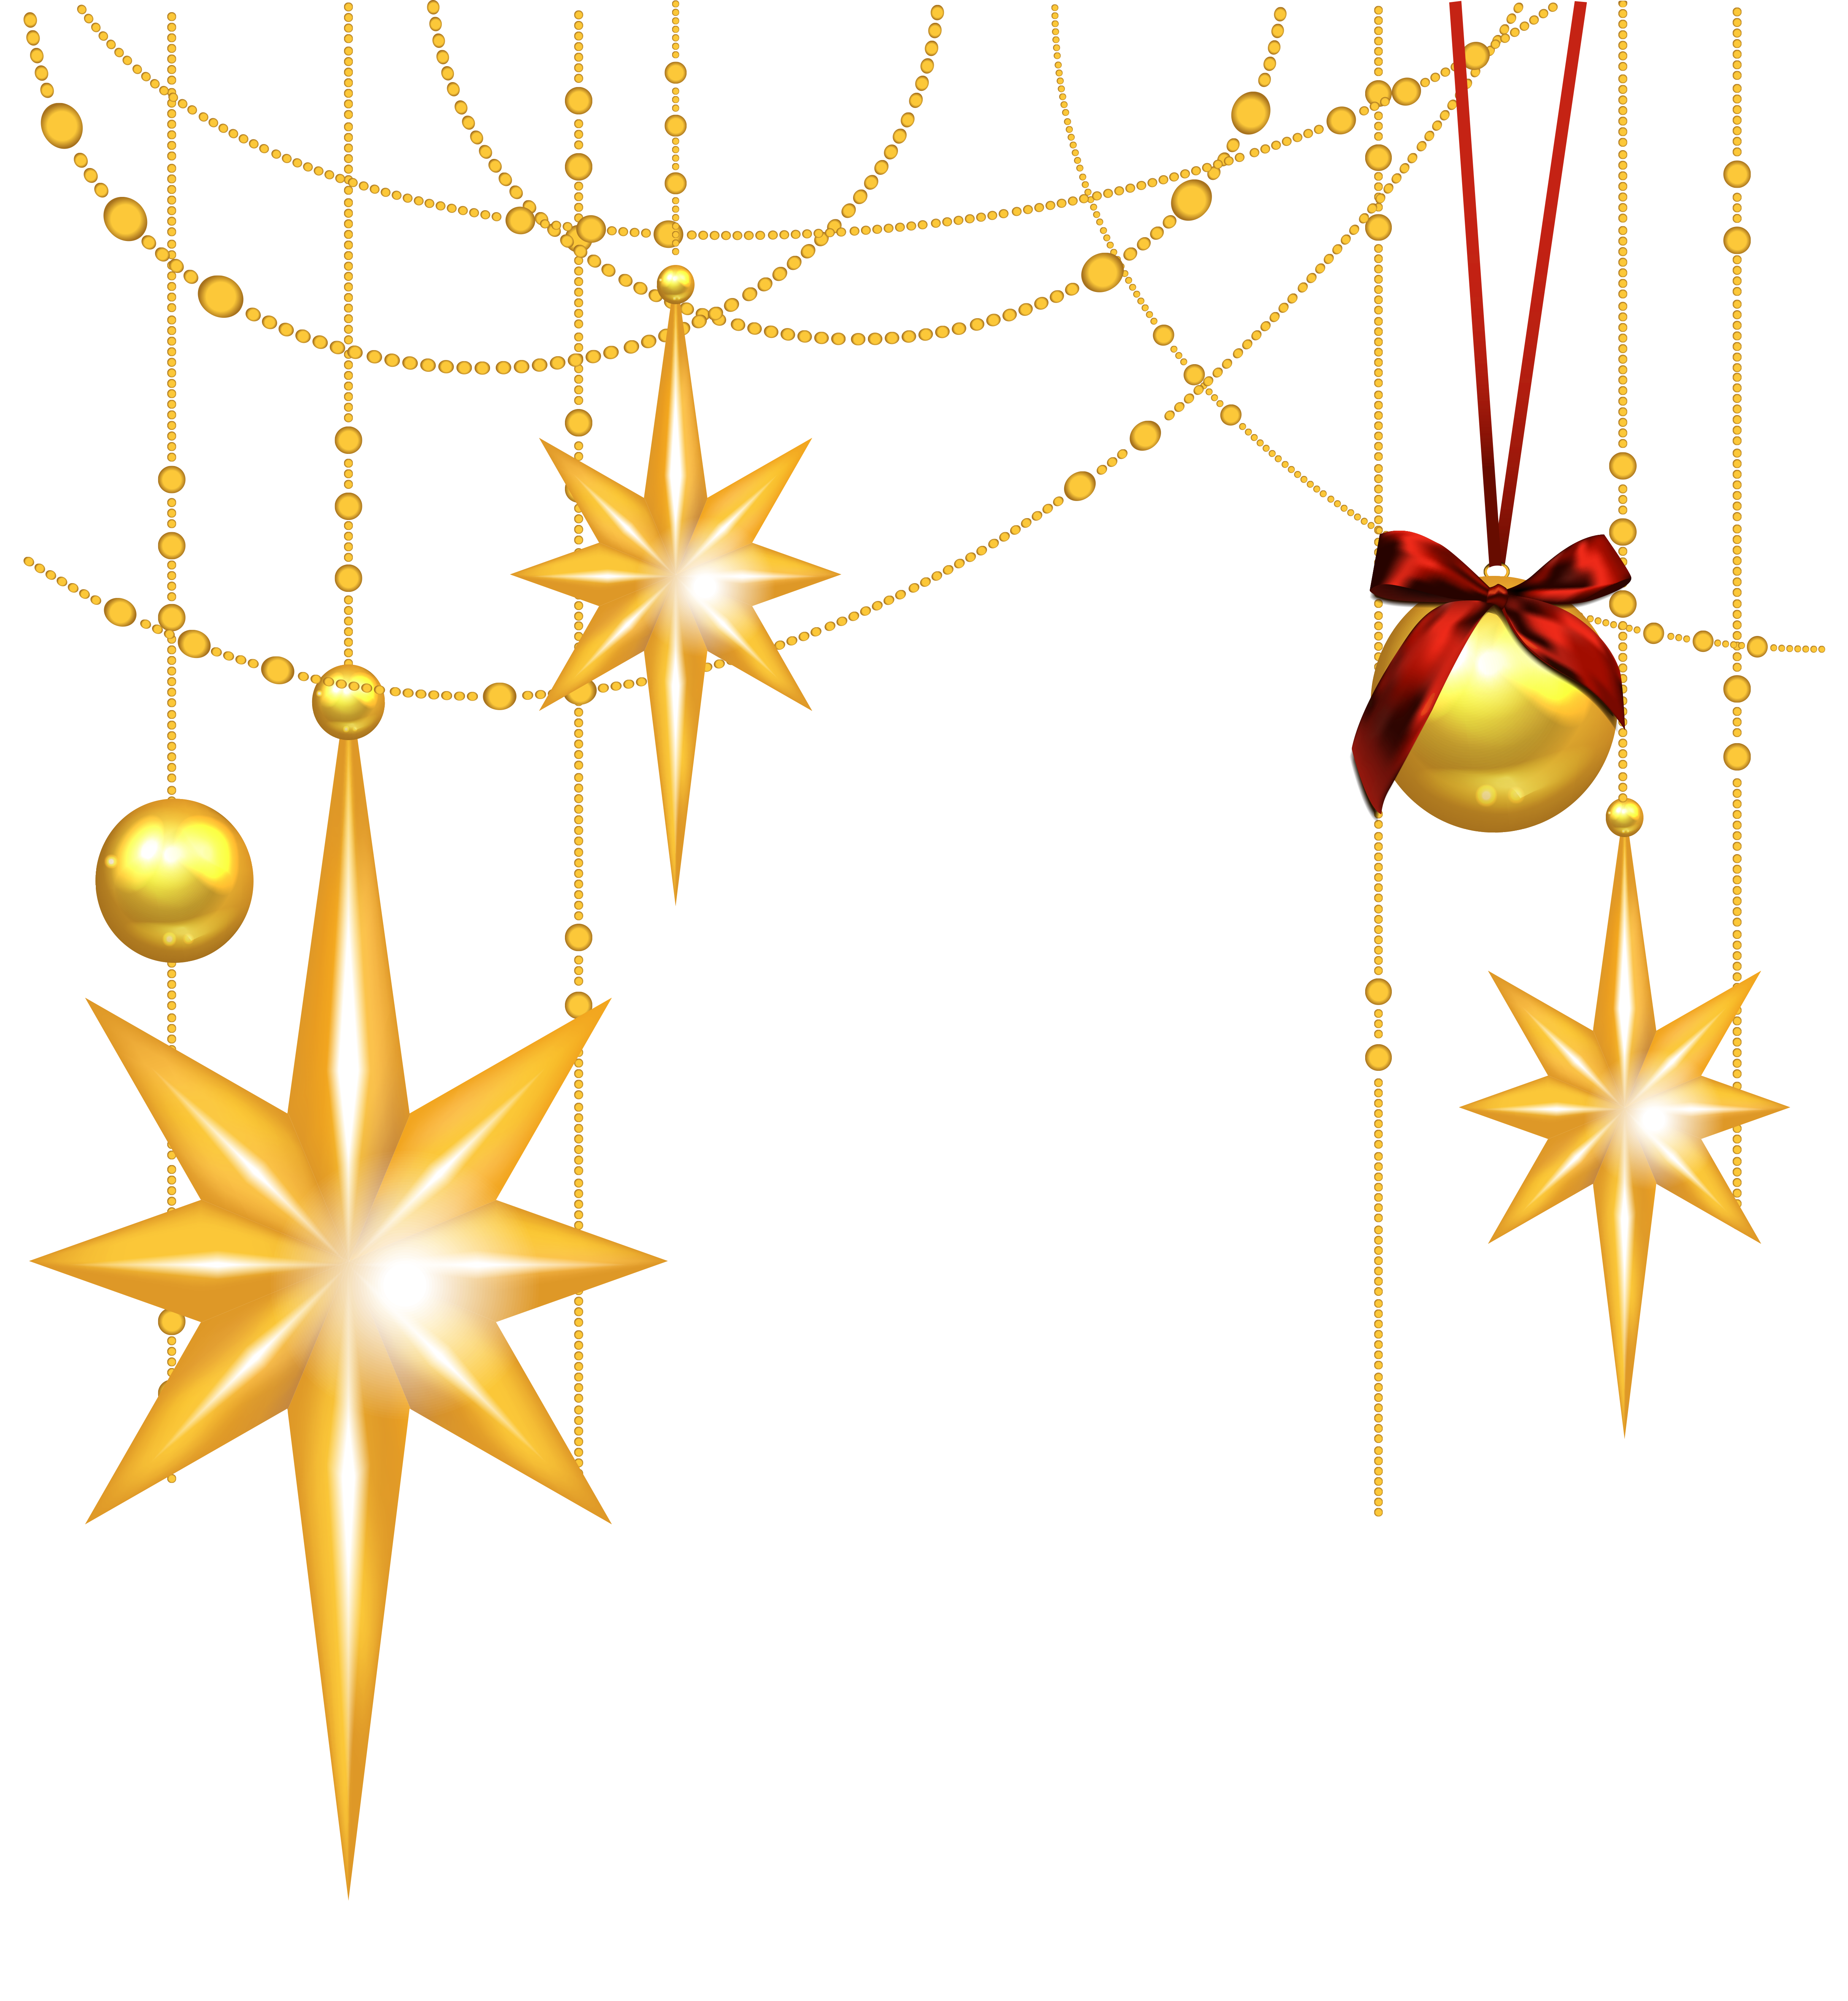 Christmas star png transparent background. Gold stars and ornament